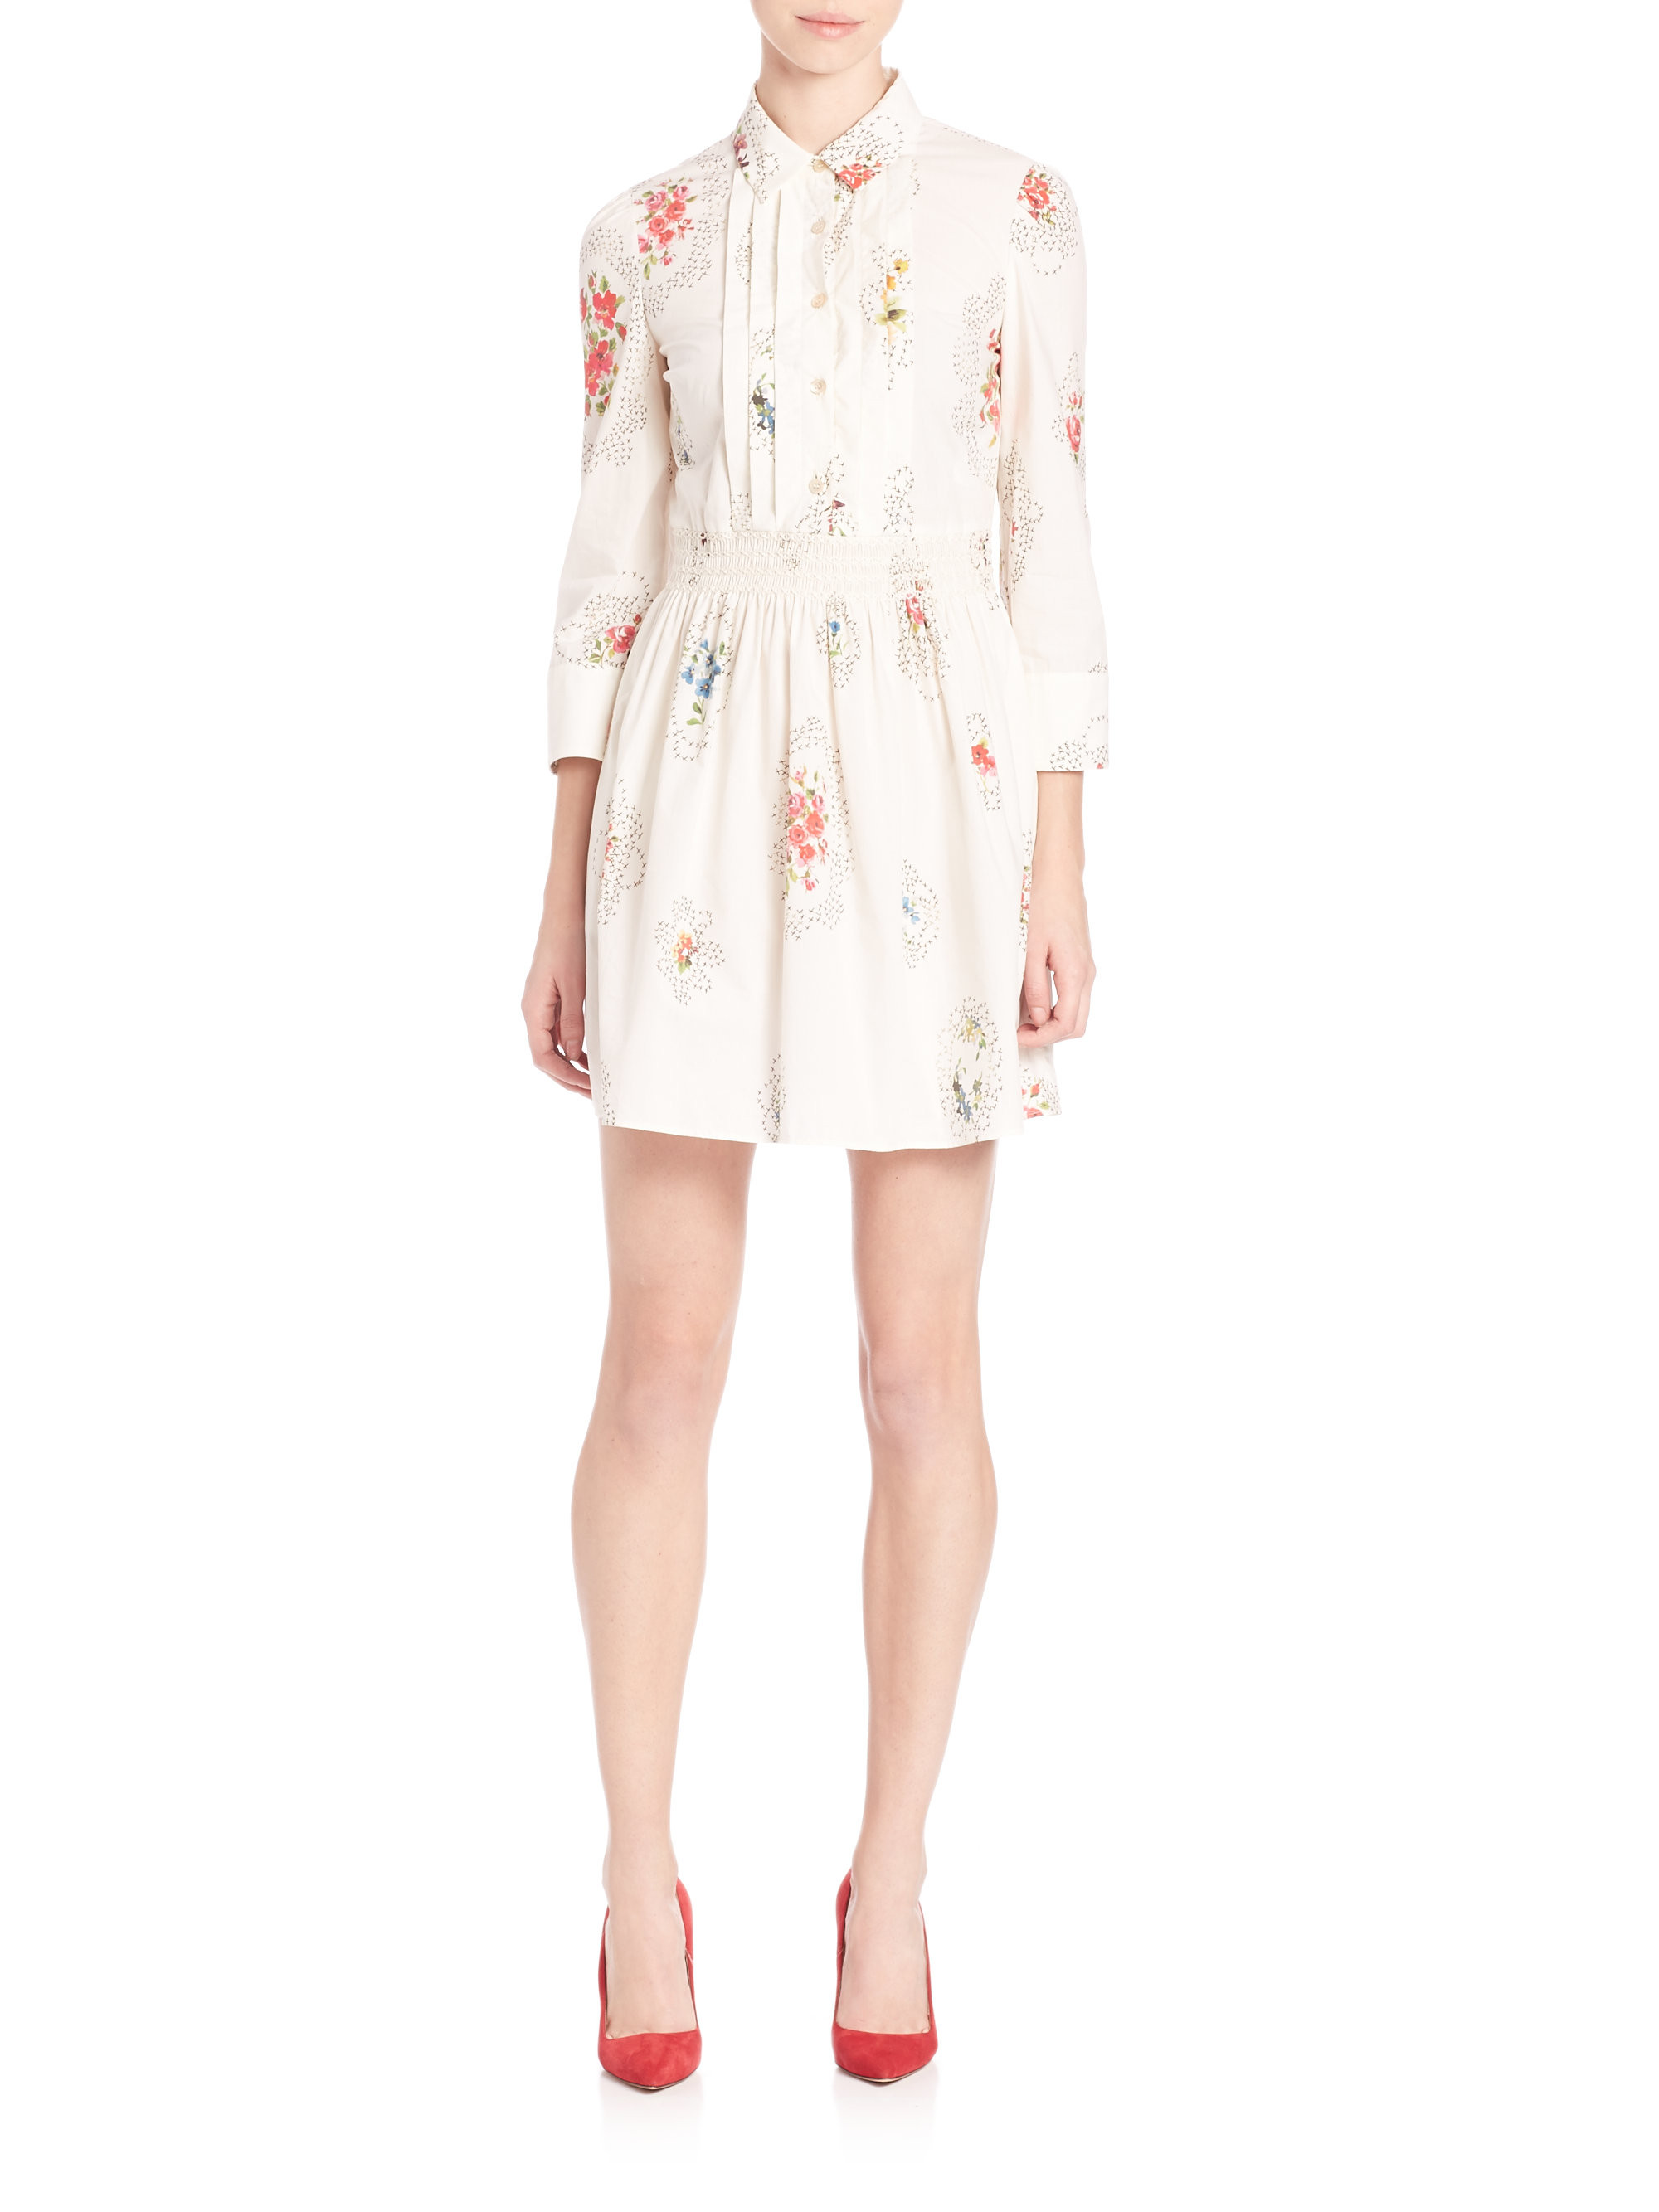 RED Valentino Shirtdress Hot Sale Low Shipping Fee Cheap line ficial Site For Sale High Quality